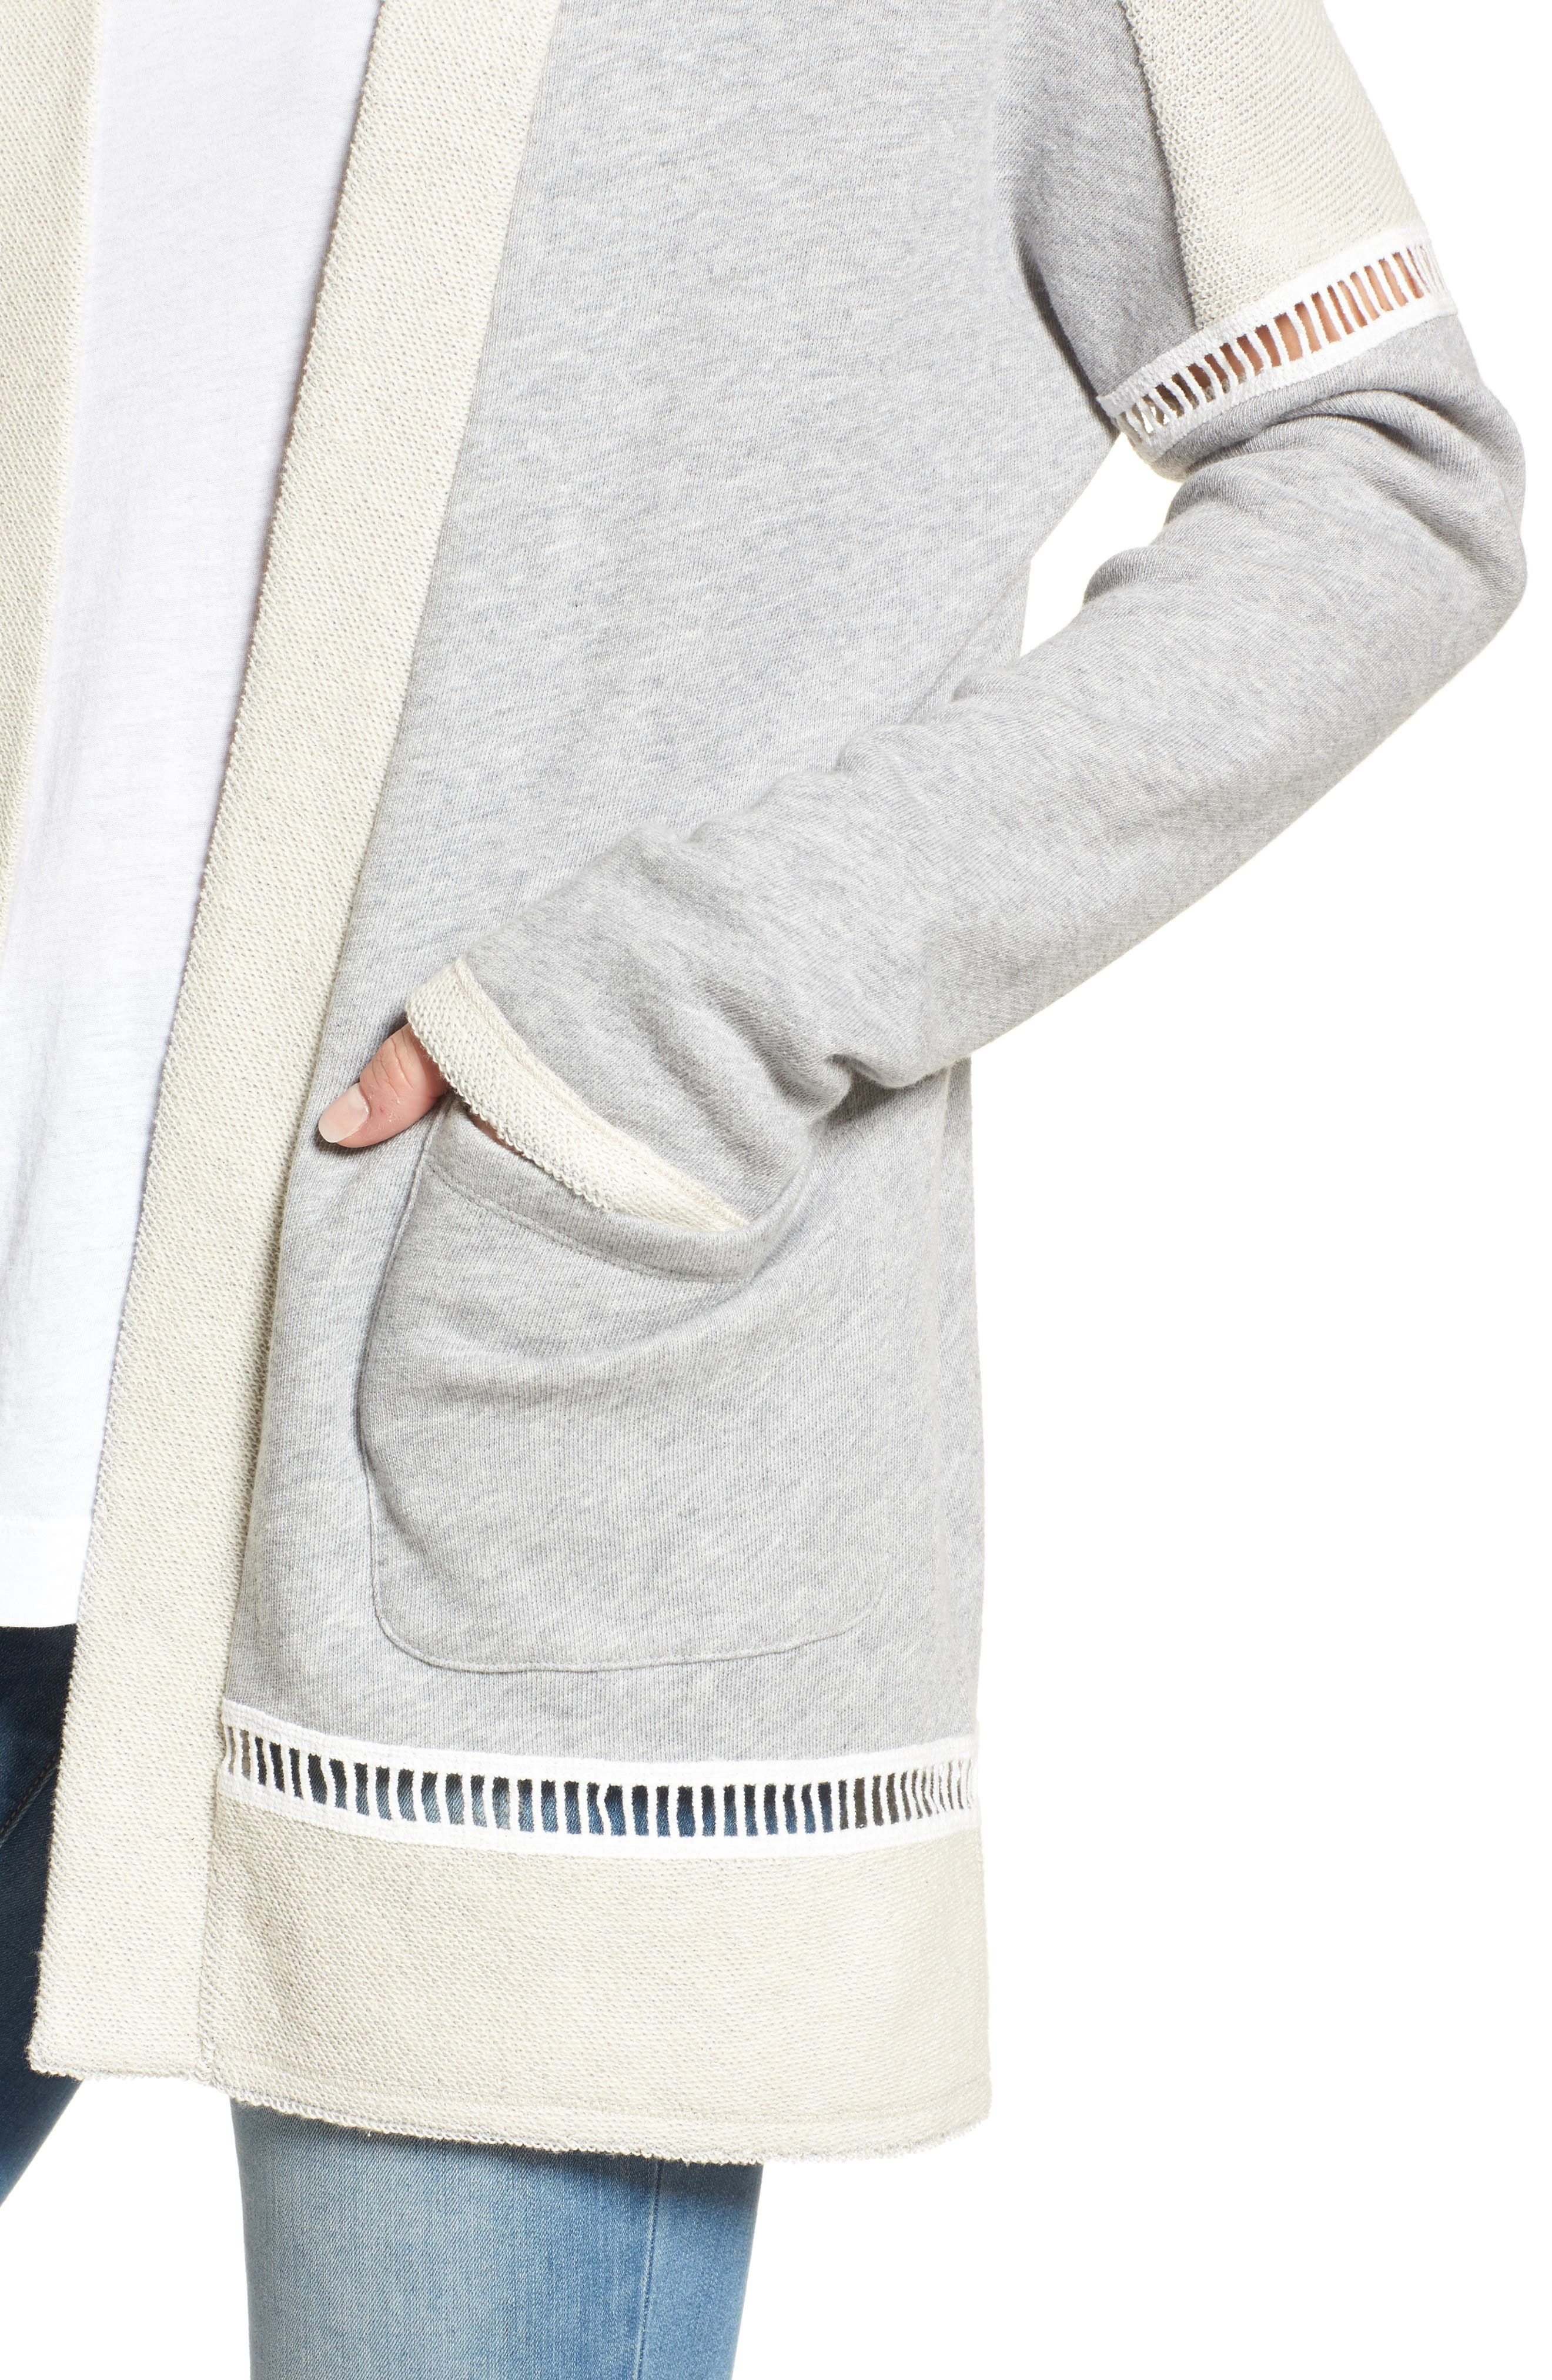 French Terry Open Front Cotton Cardigan,                             Alternate thumbnail 4, color,                             Grey Heather